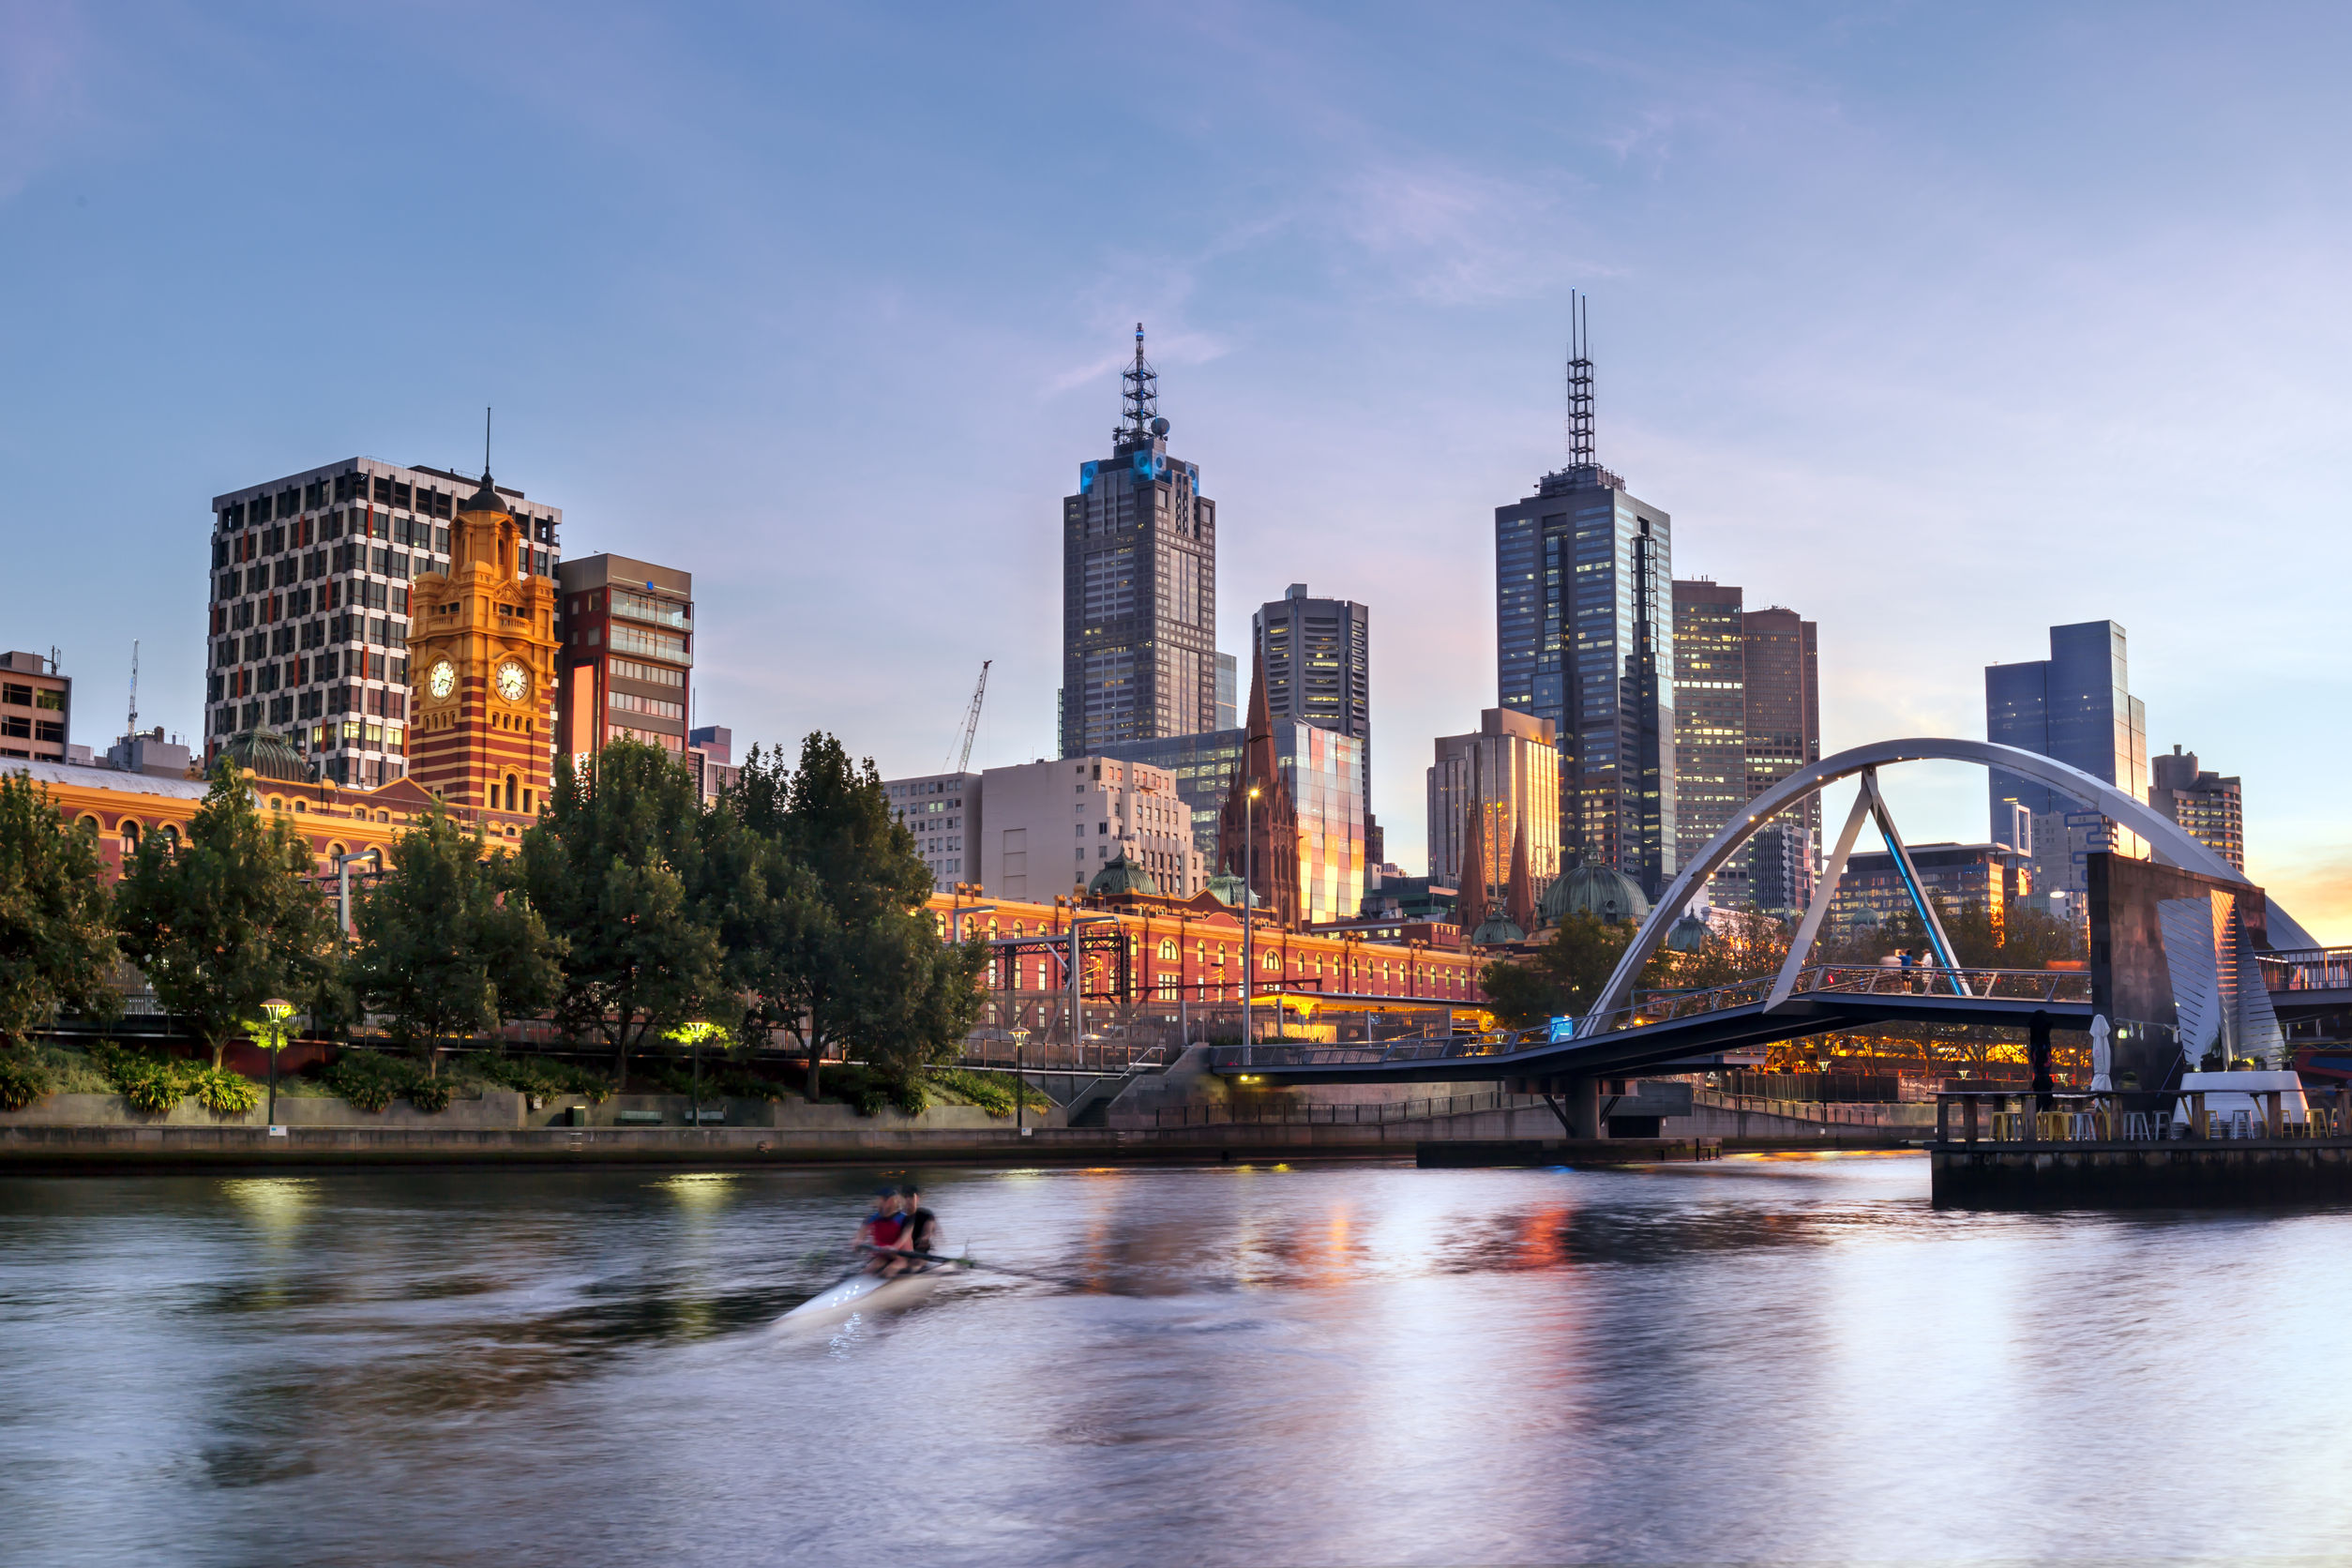 melbourne, australia, in early morning light. yarra river, towards flinders street station.